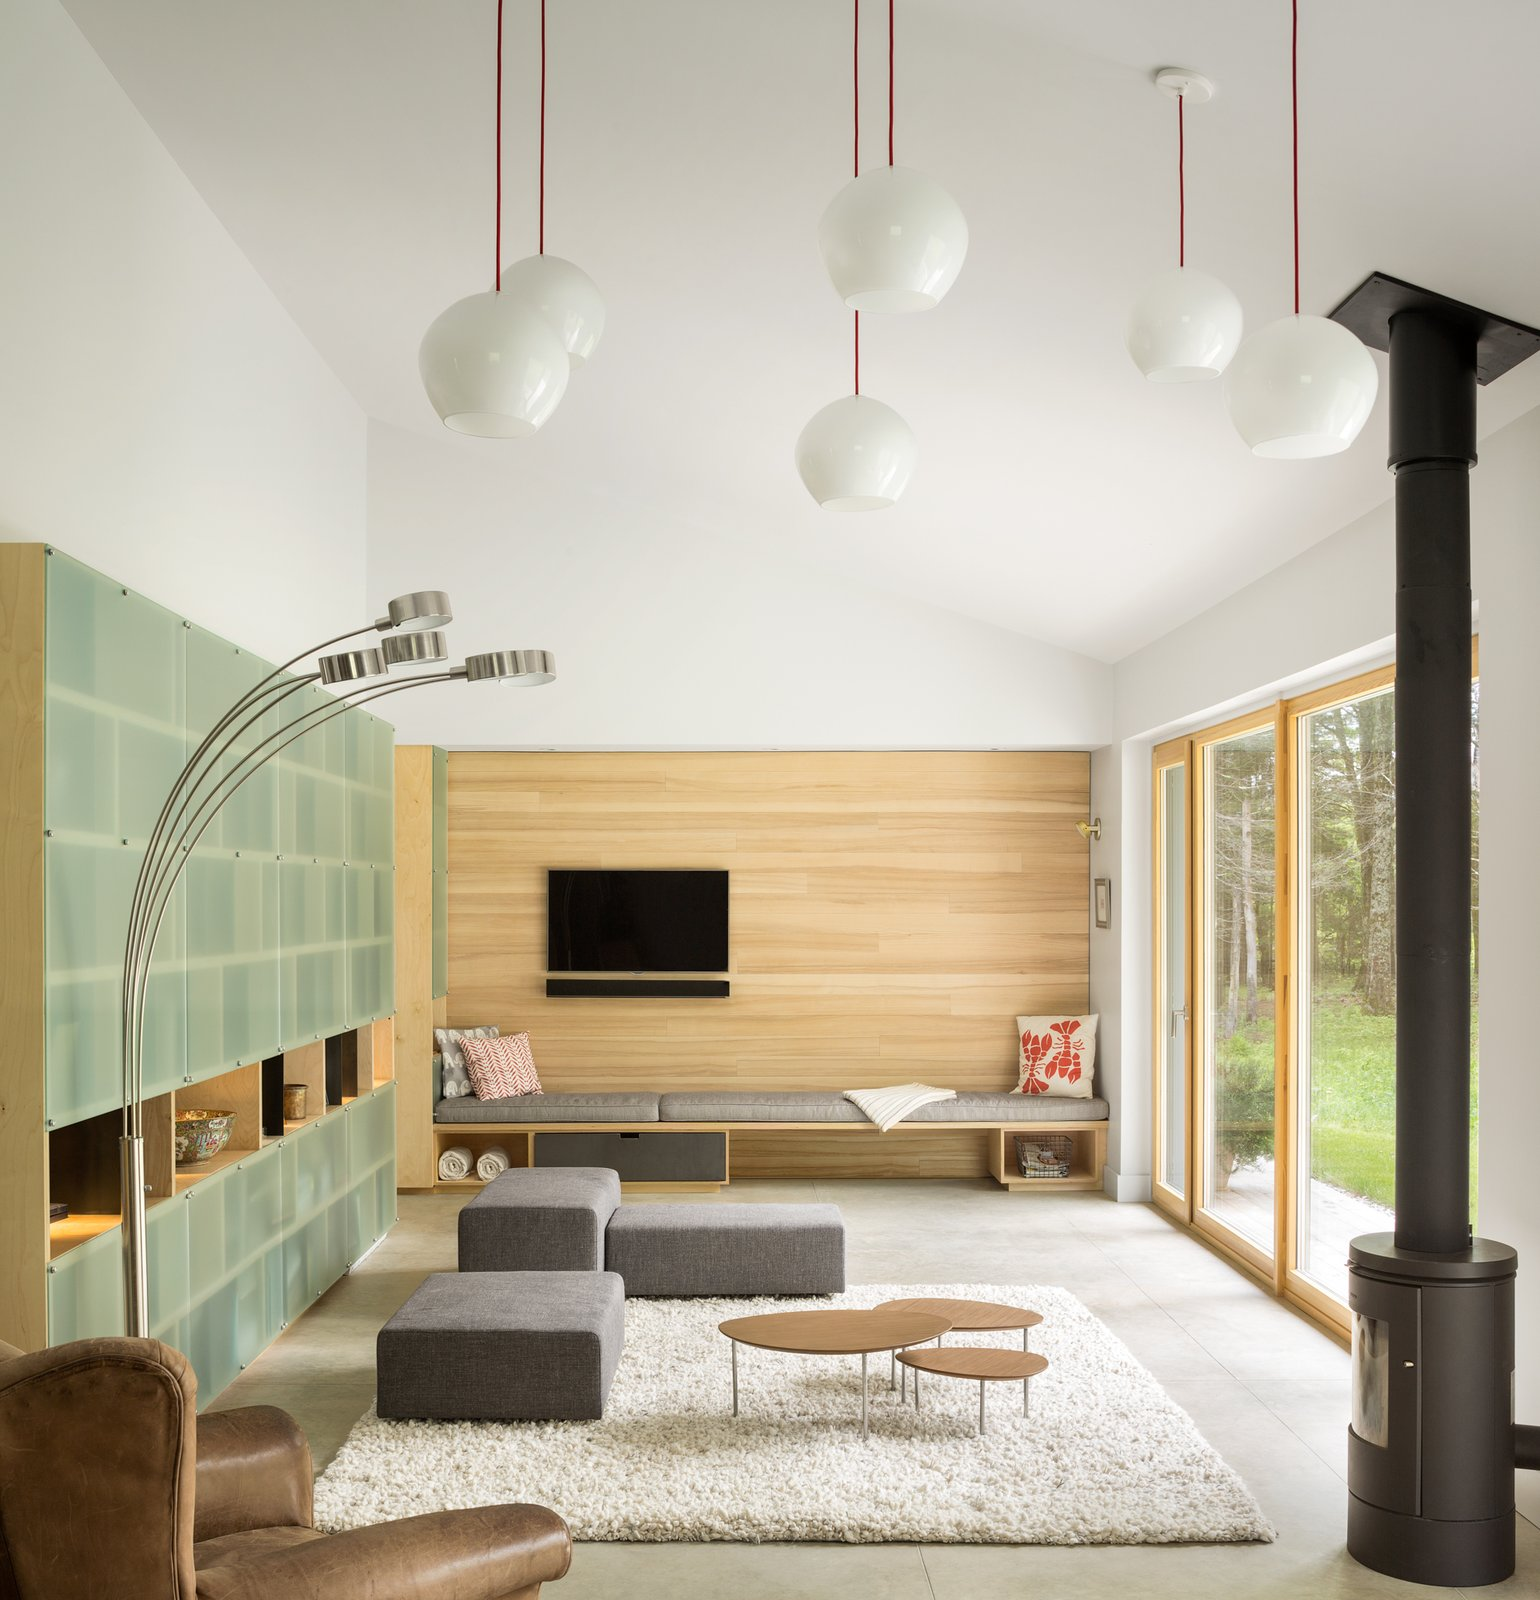 Living Room, Pendant Lighting, Bench, Recliner, Chair, Concrete Floor, Rug Floor, Shelves, Lamps, and Floor Lighting  Best Photos from GO Home Takes the Passive House Approach to Prefab